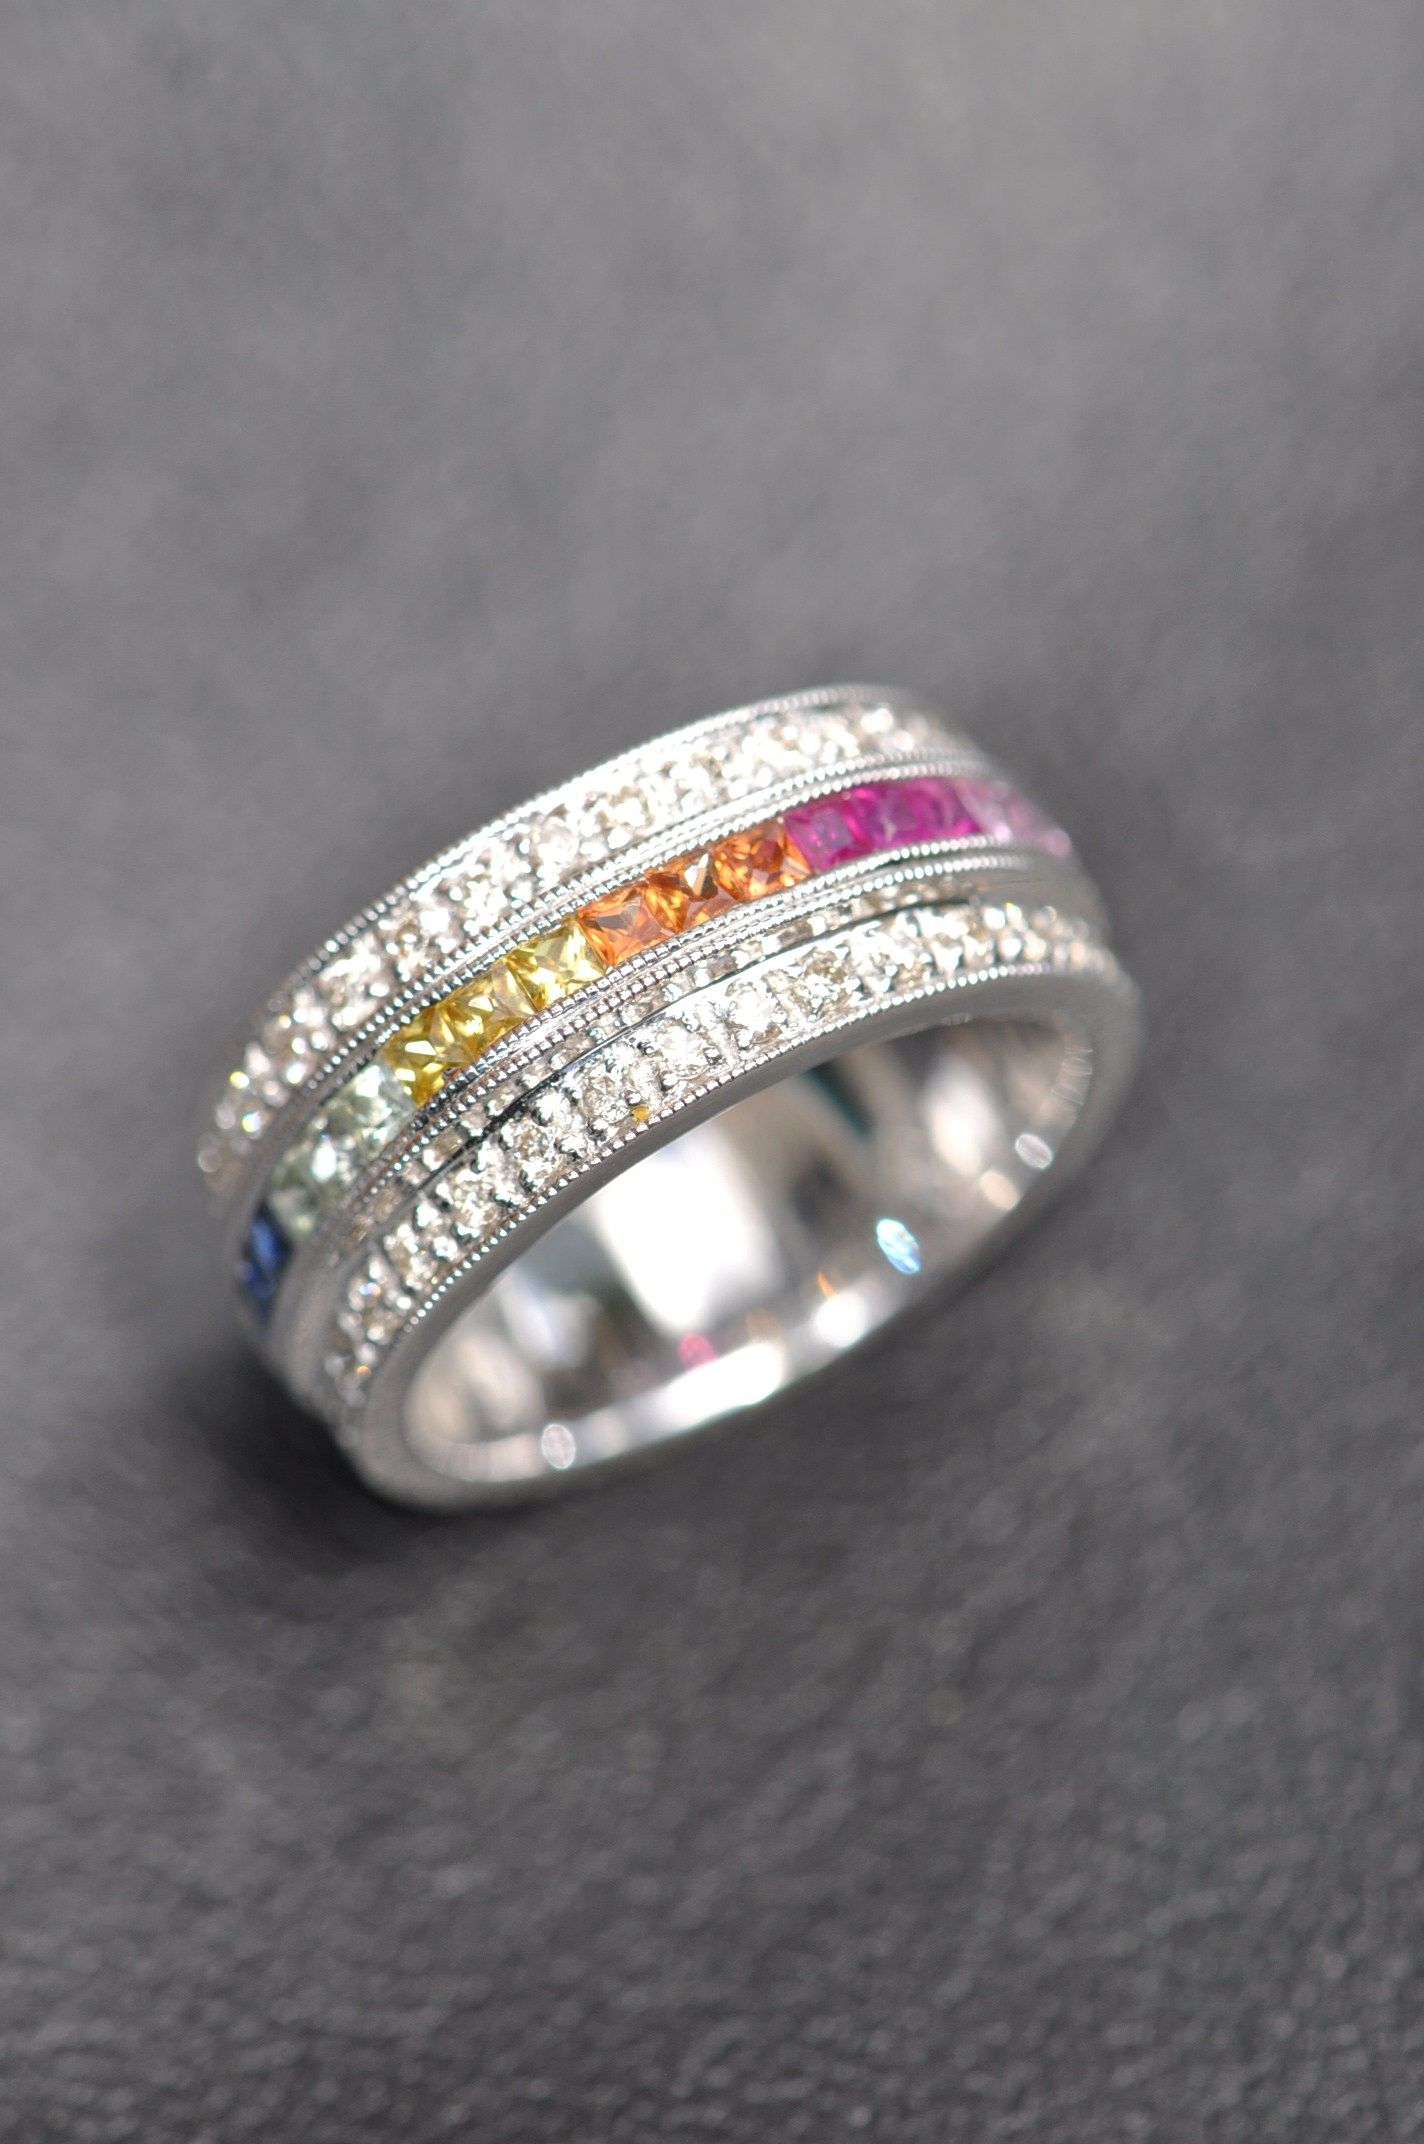 14Kt Whitegold Rainbow Ring Diamonds & Precious Colored Stones